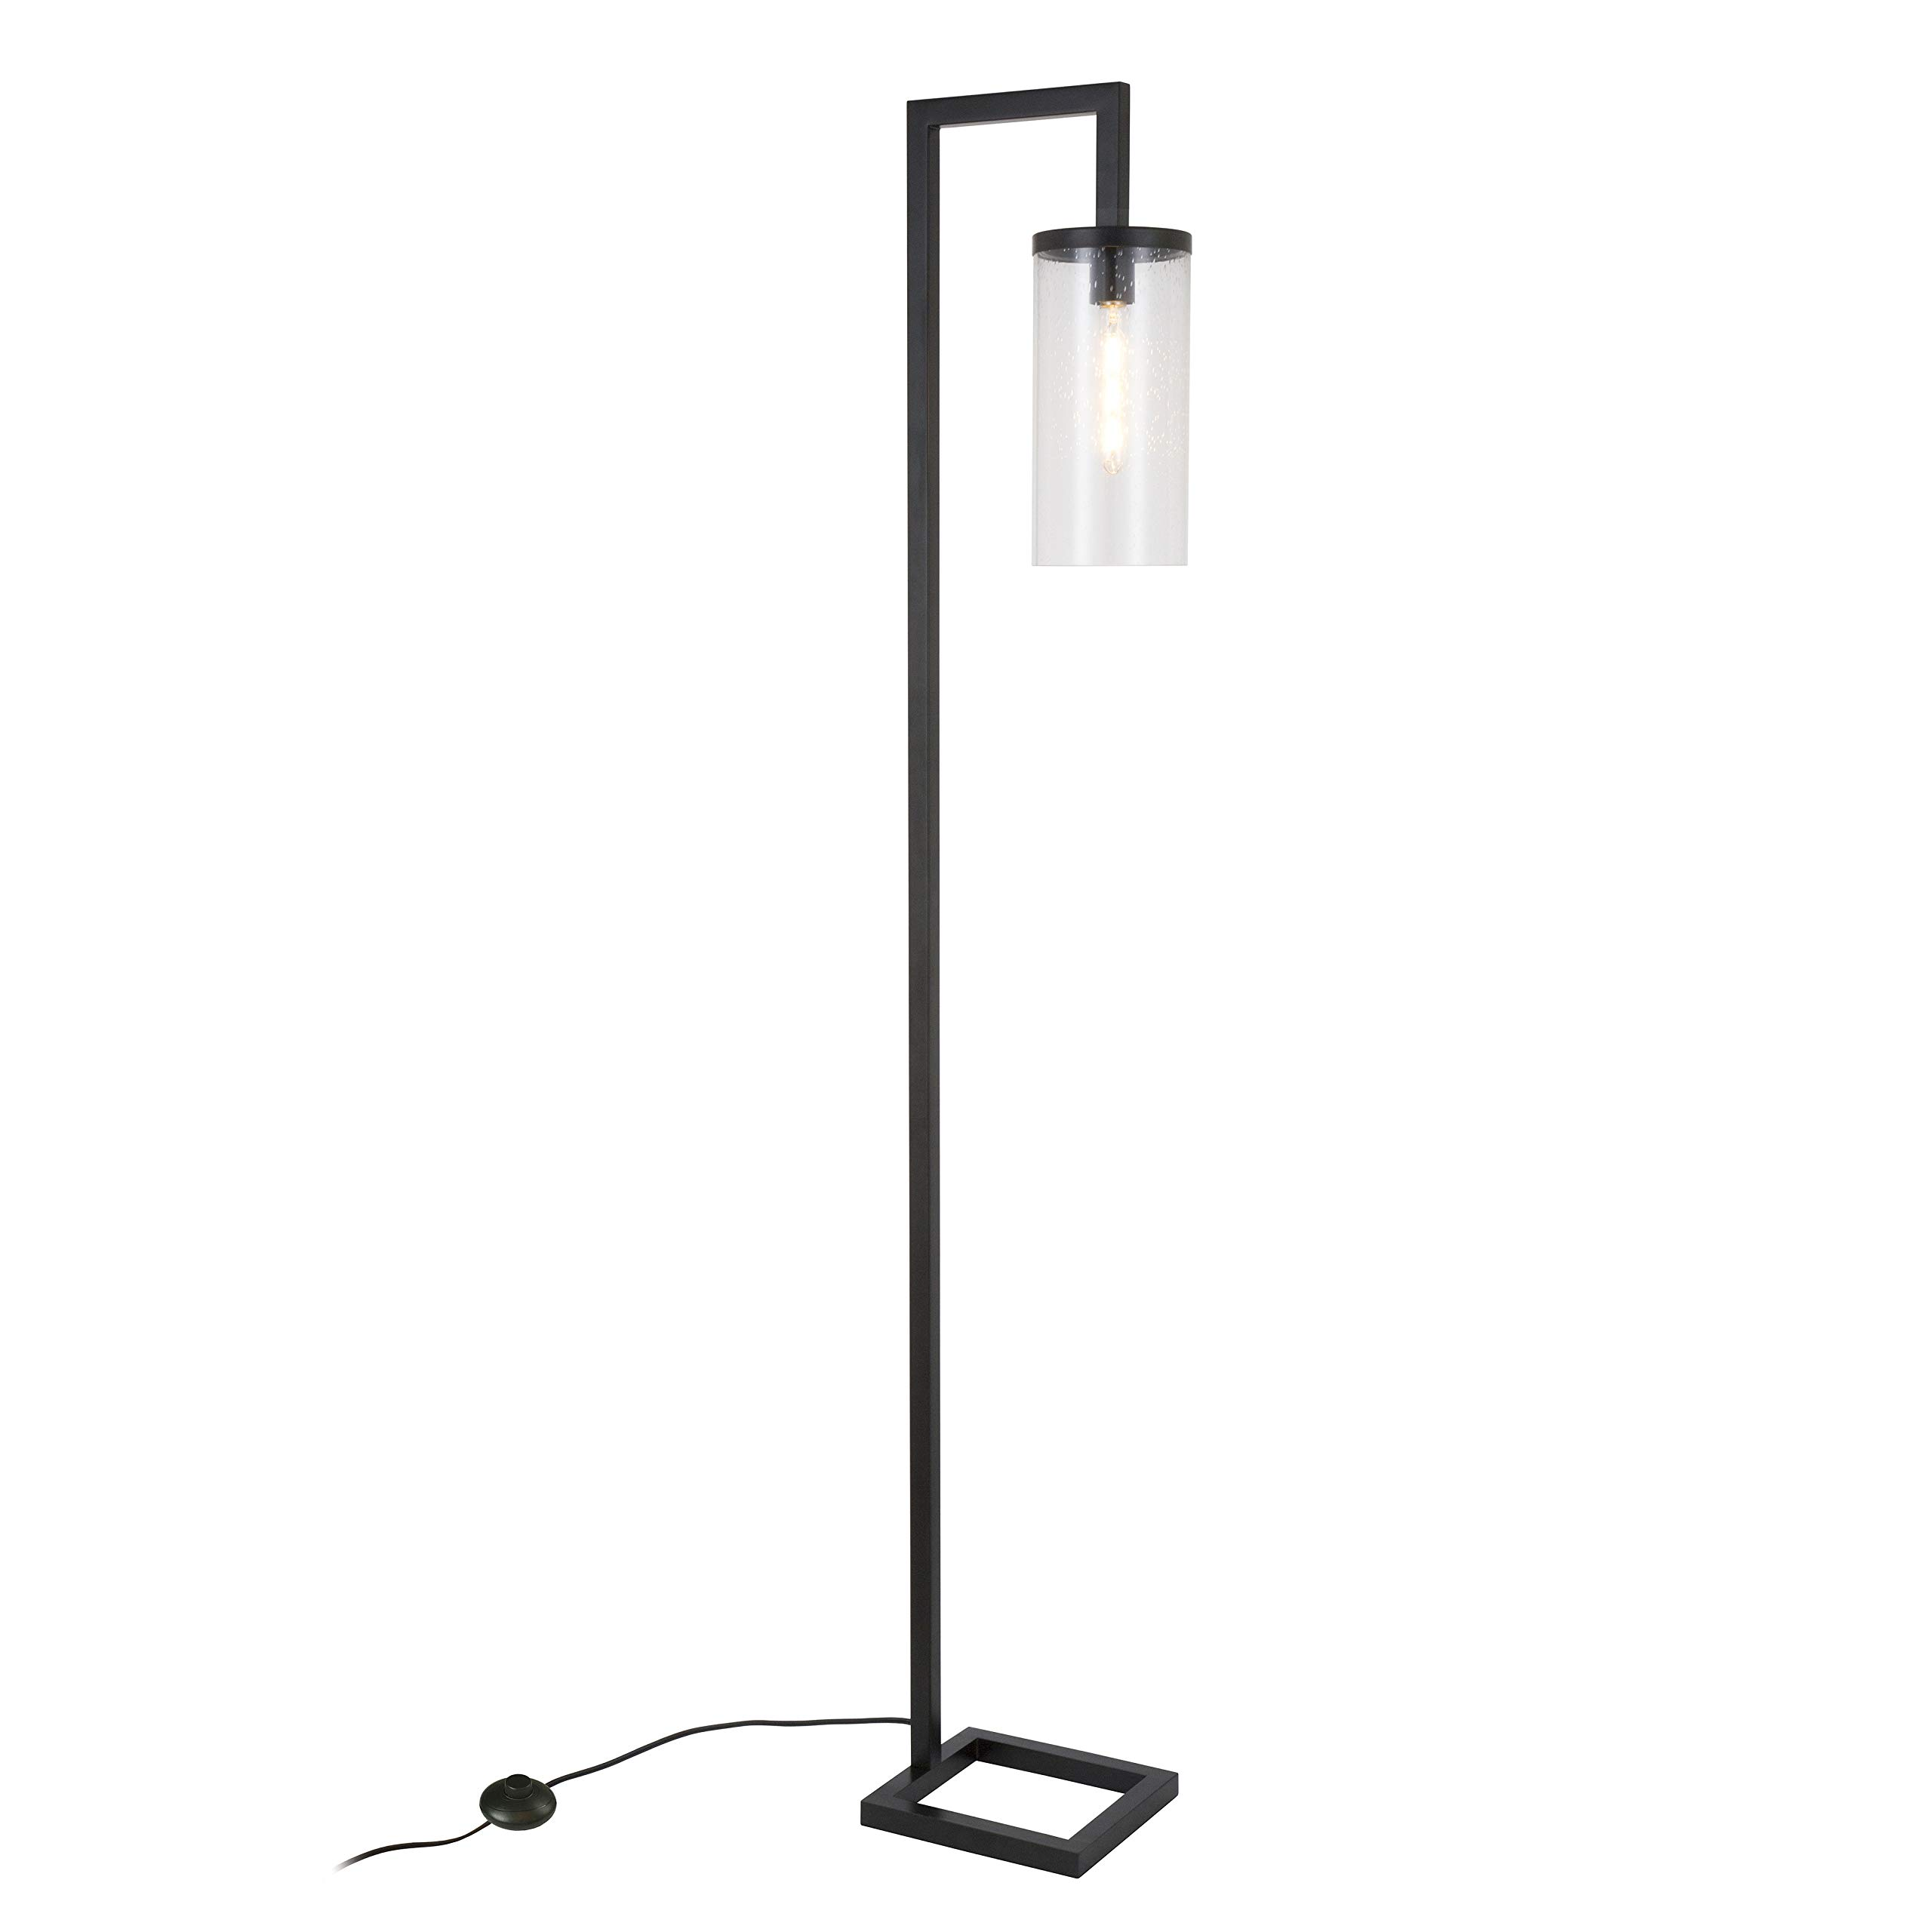 Henn&Hart FL0014 Modern Farmhouse seeded Task Lamp, One Size Black by Henn&Hart (Image #9)